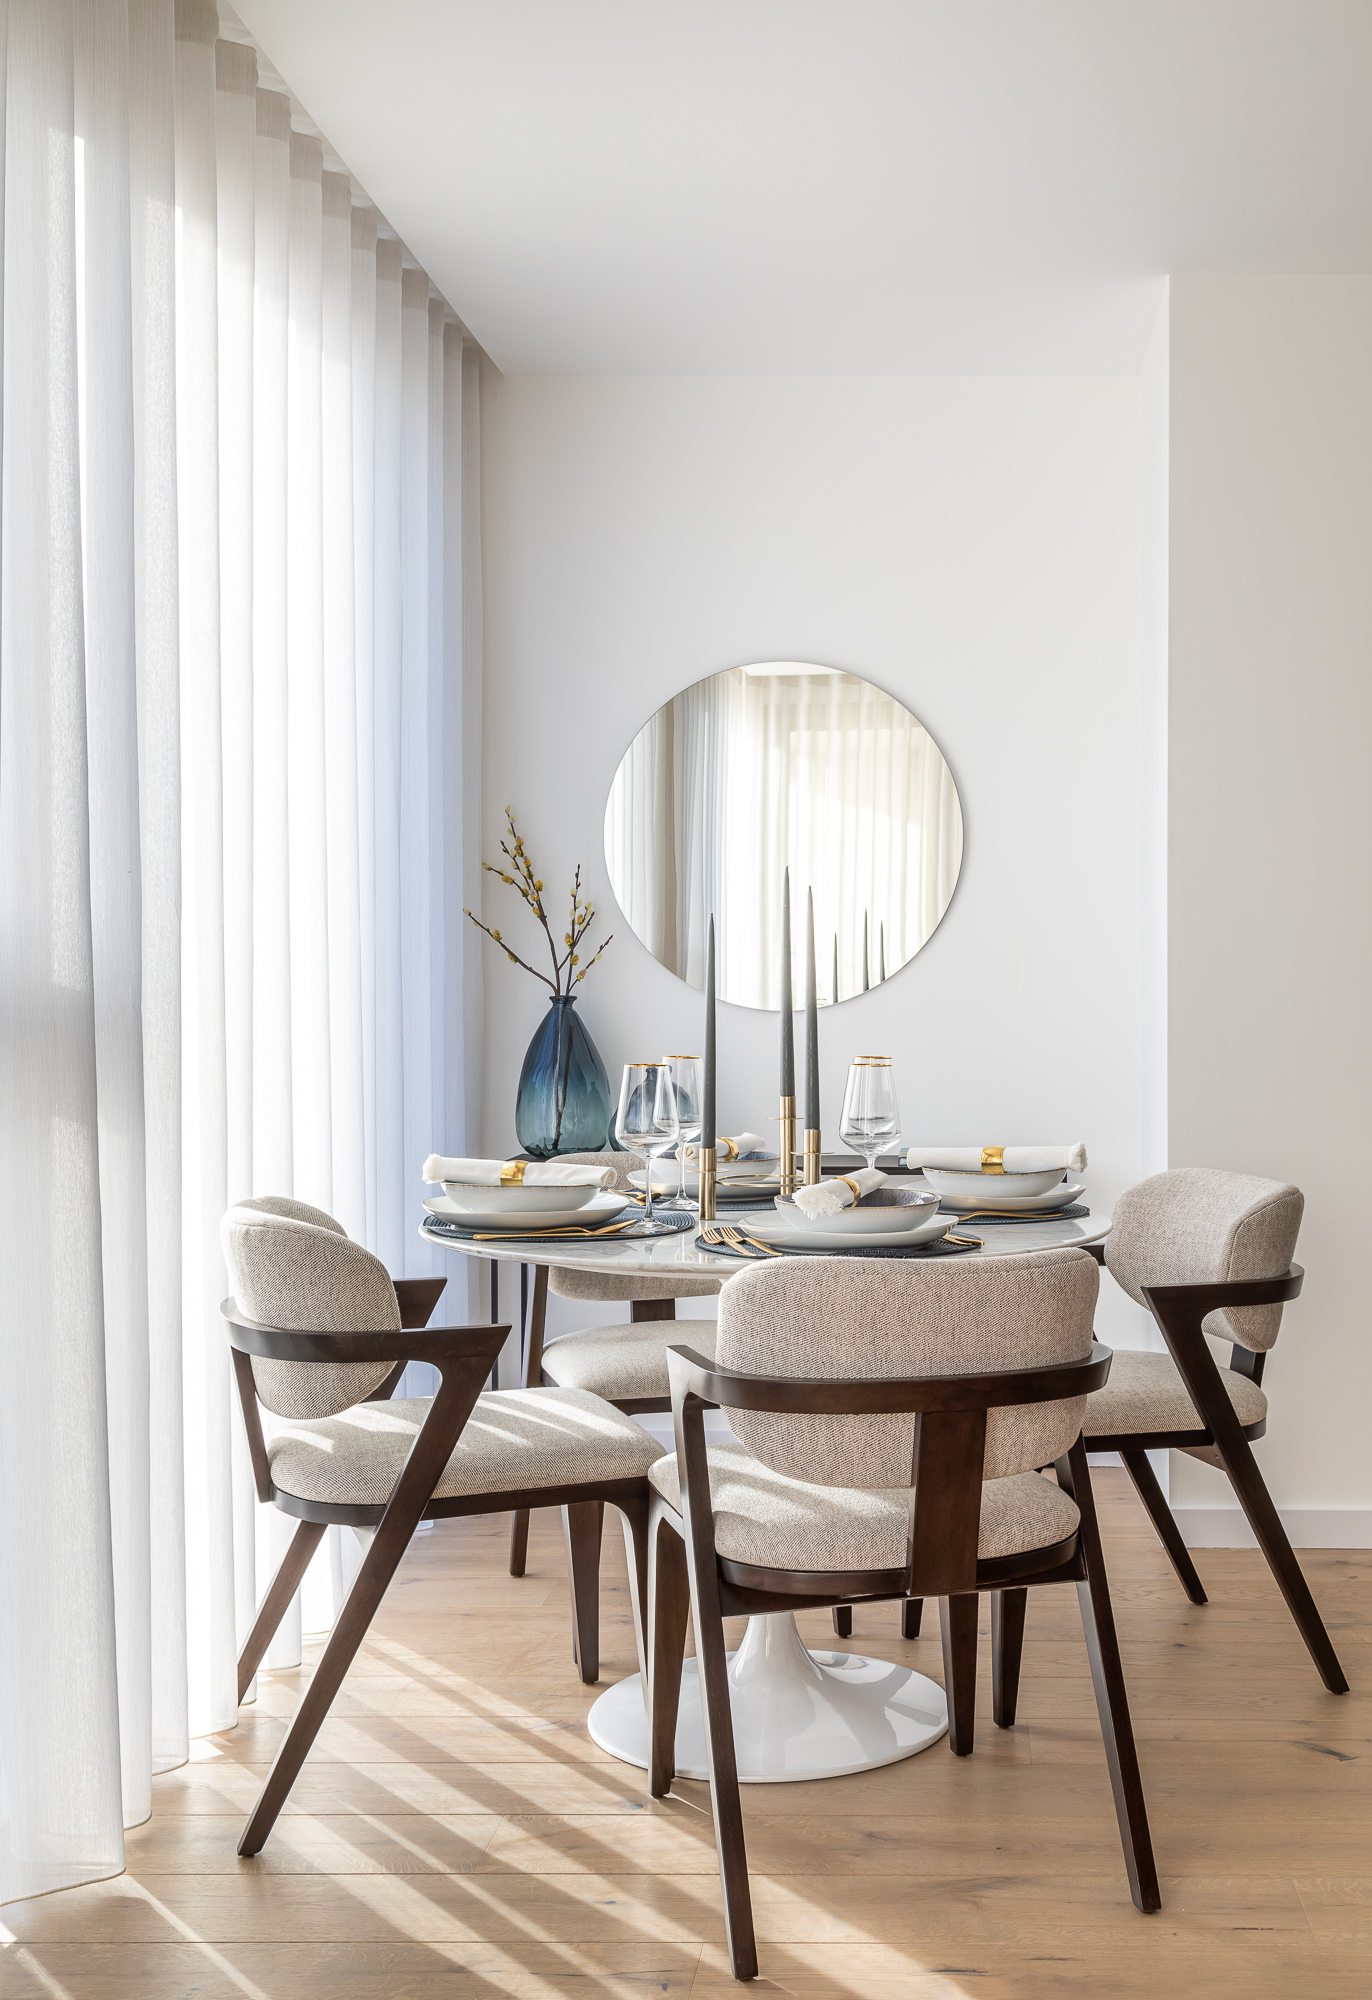 jonathan bond, interior photographer, dining room table & chairs, putney london